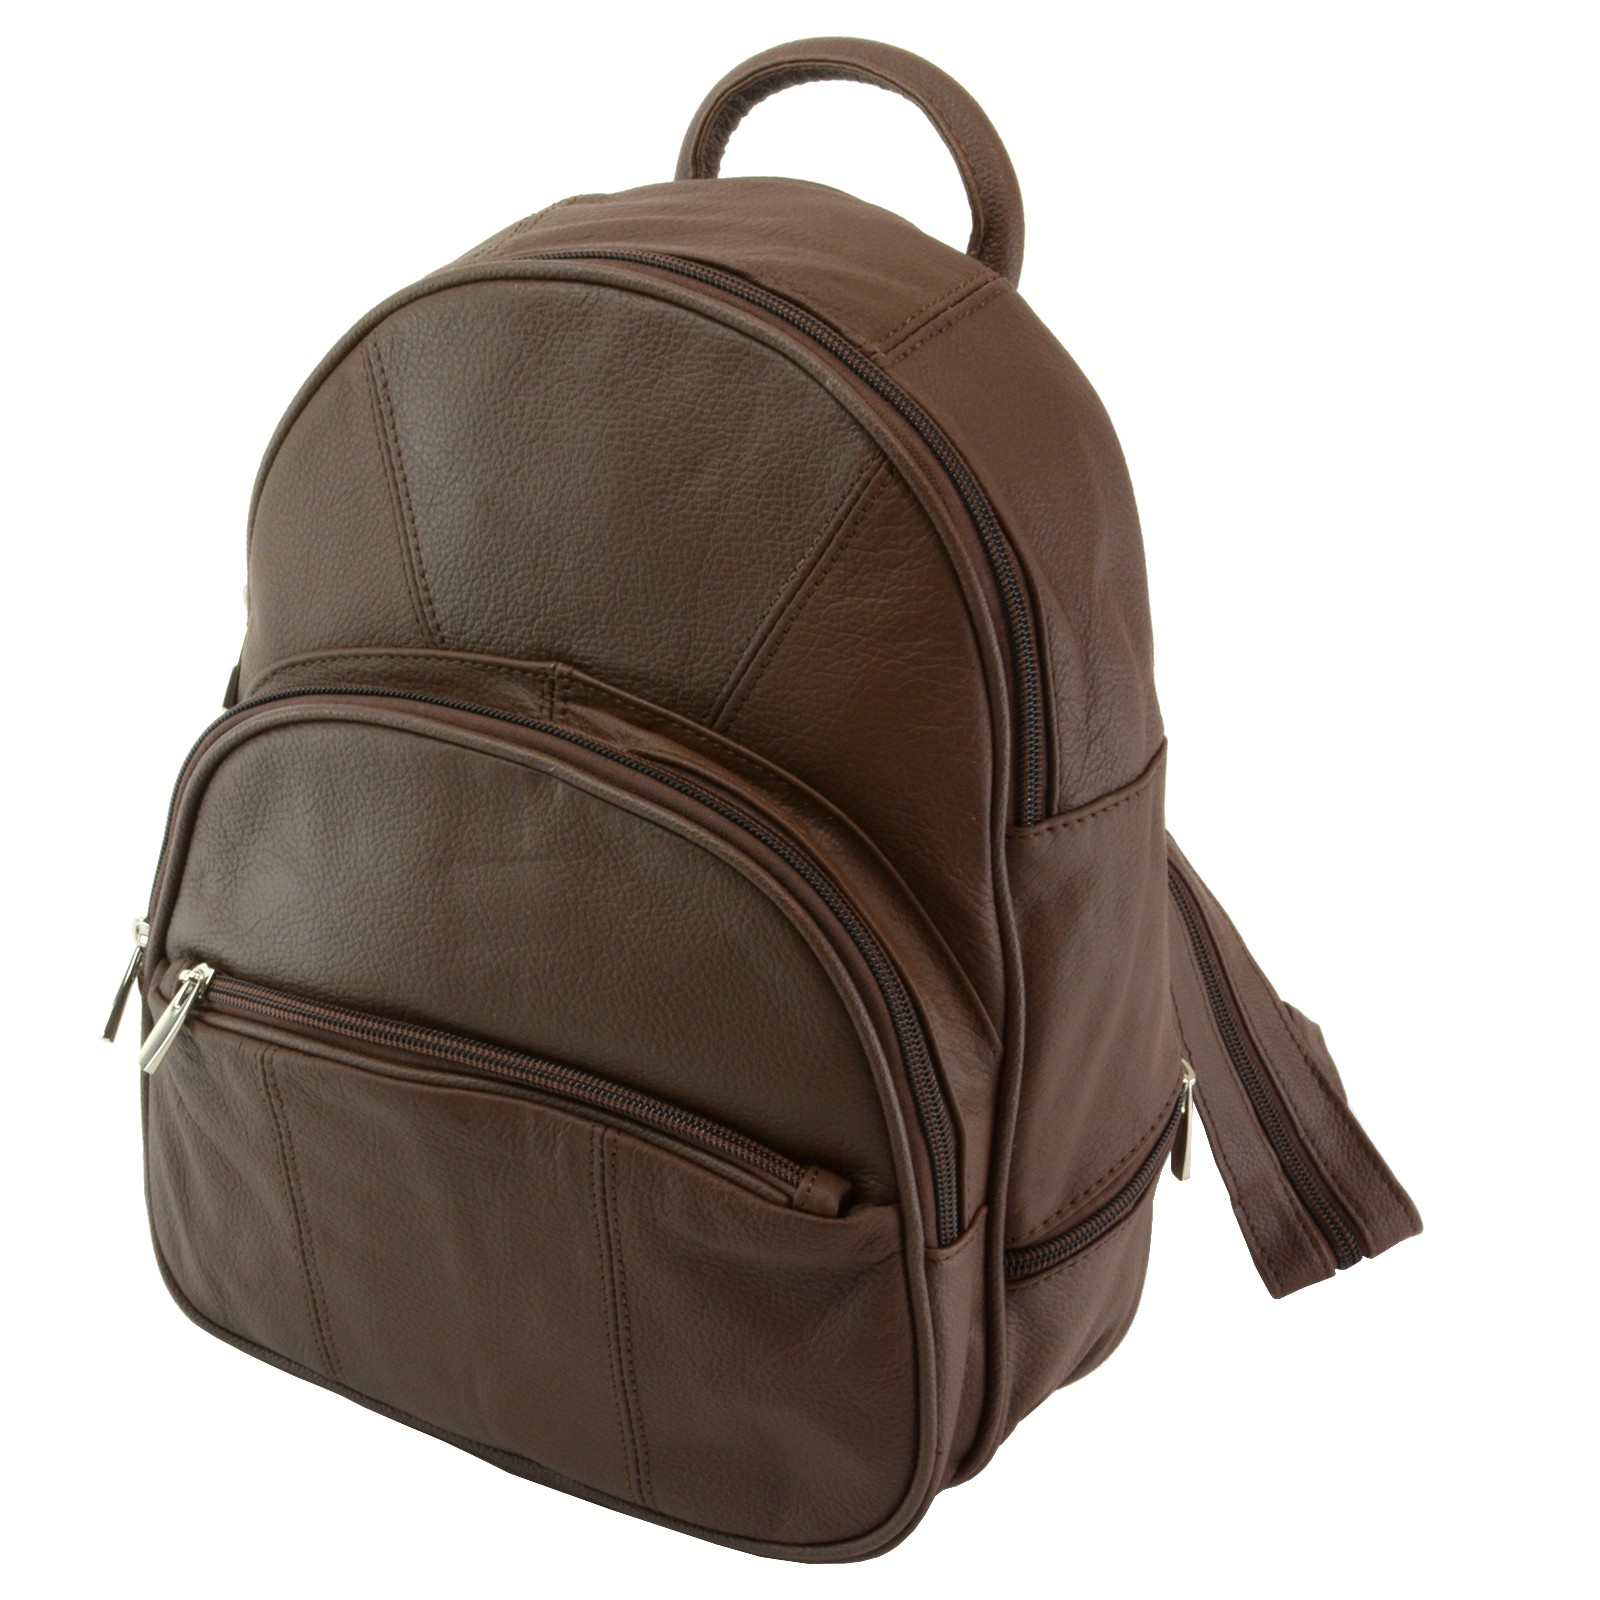 Buy brown backpack purse   OFF57% Discounted eb626bdf0e38